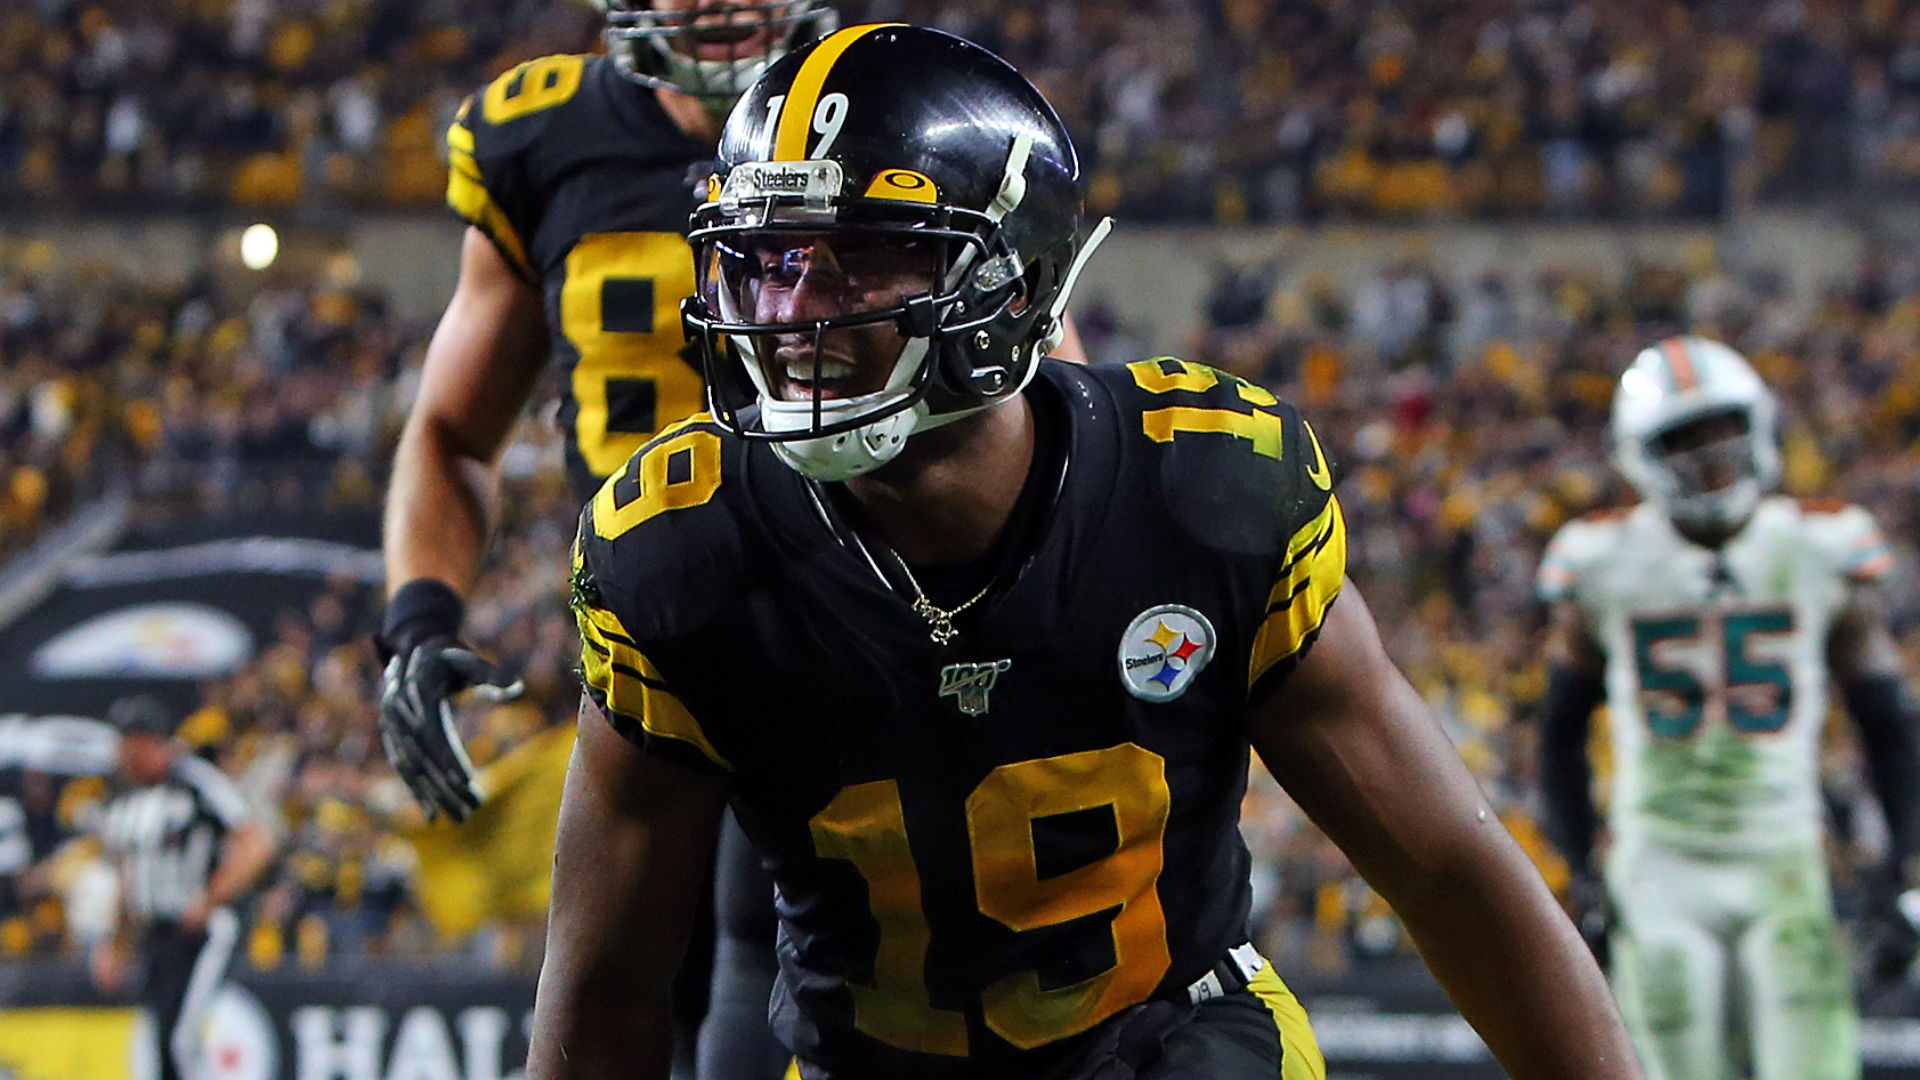 The Pittsburgh Steelers could have JuJu Smith-Schuster and James Conner back for their key meeting with the Buffalo Bills in Week 15.